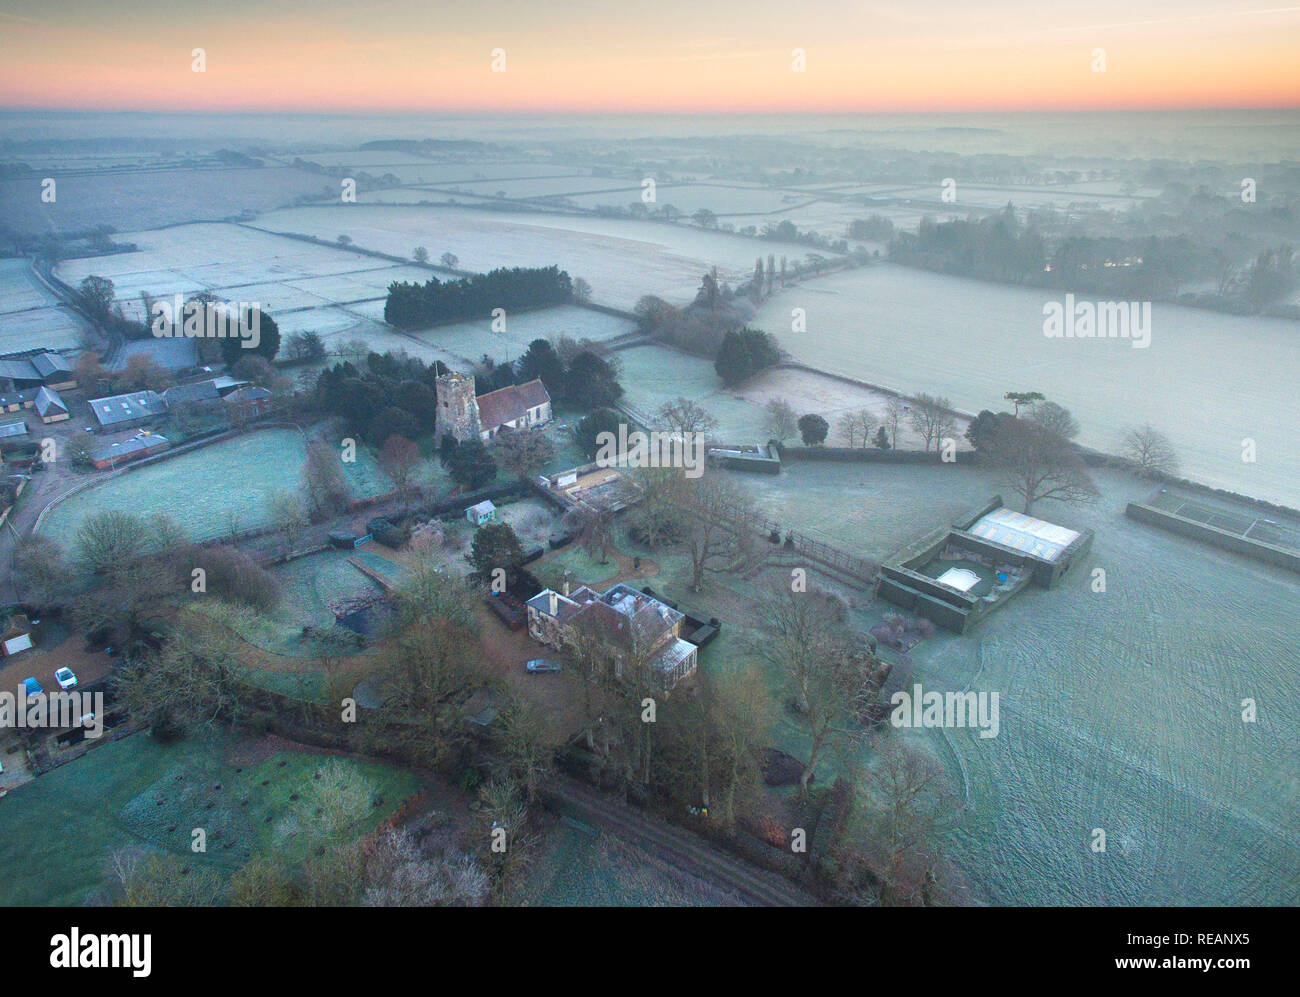 Ripe, East Sussex, UK. 21st January 2019. Very cold and frosty start to the day in Rural East Sussex afetr a claer and cloudless night. Credit: Peter Cripps/Alamy Live News - Stock Image